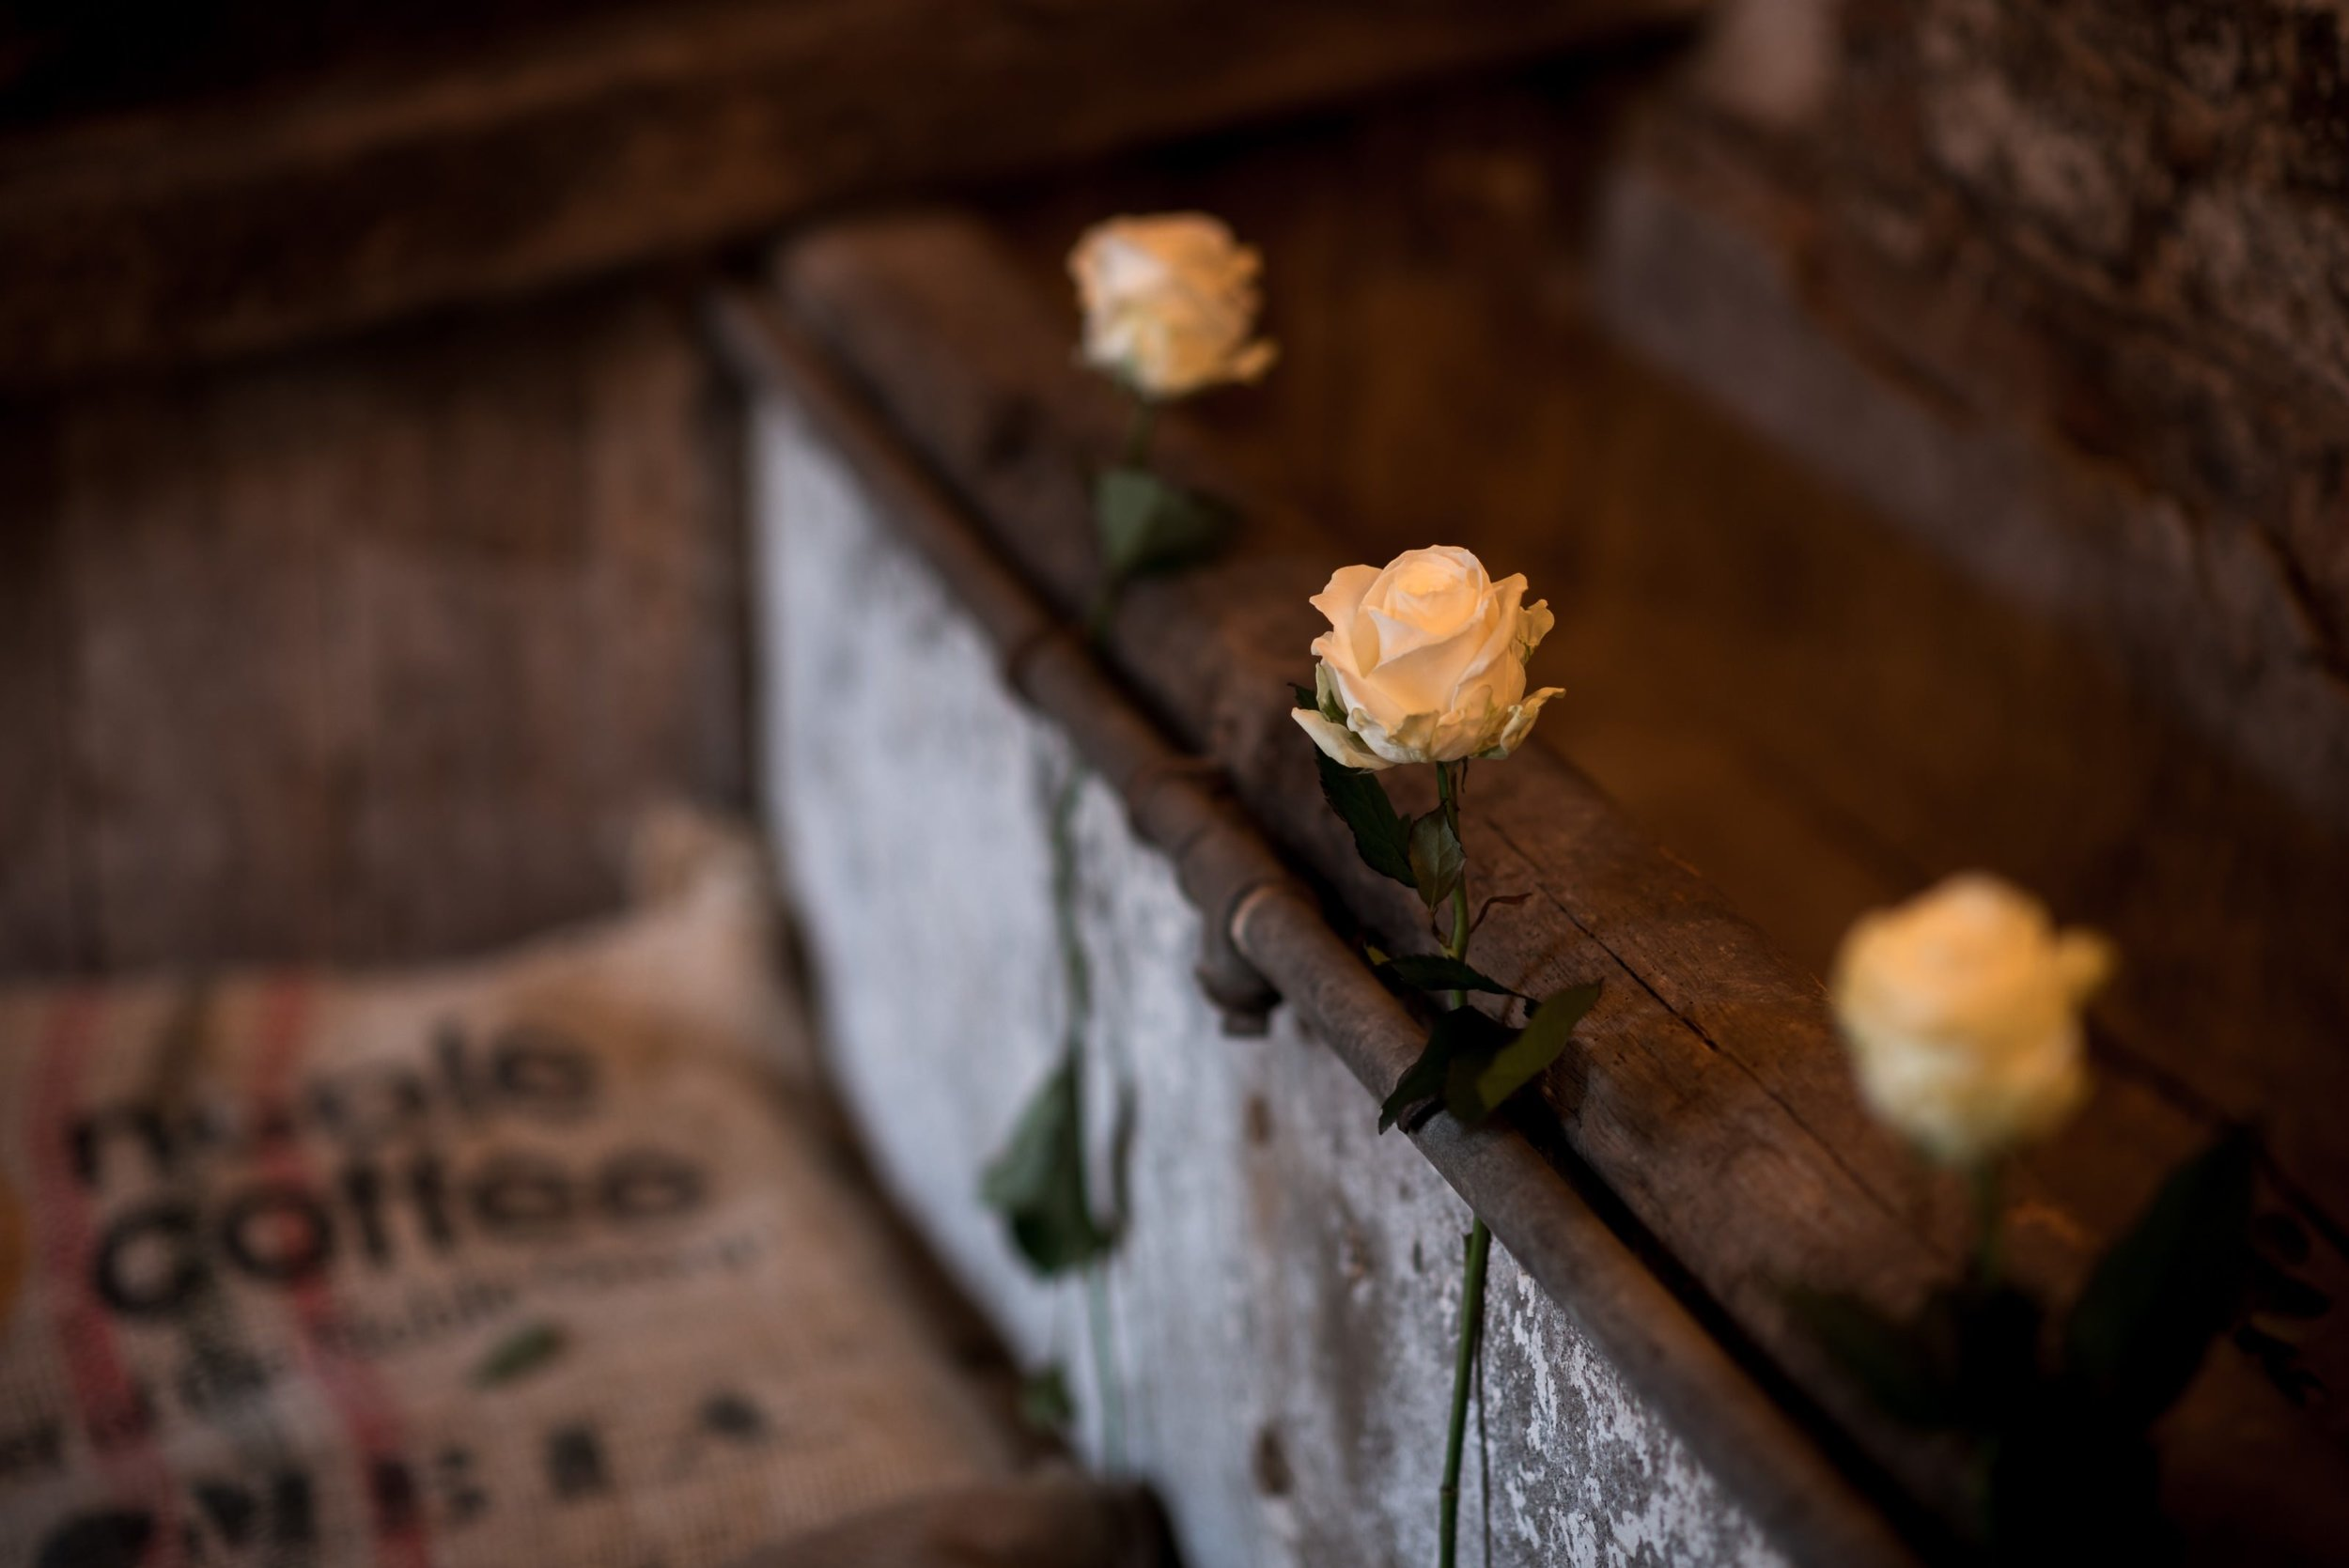 Classic white roses in The Normans Cow Stalls Photo by www.edpereira.com